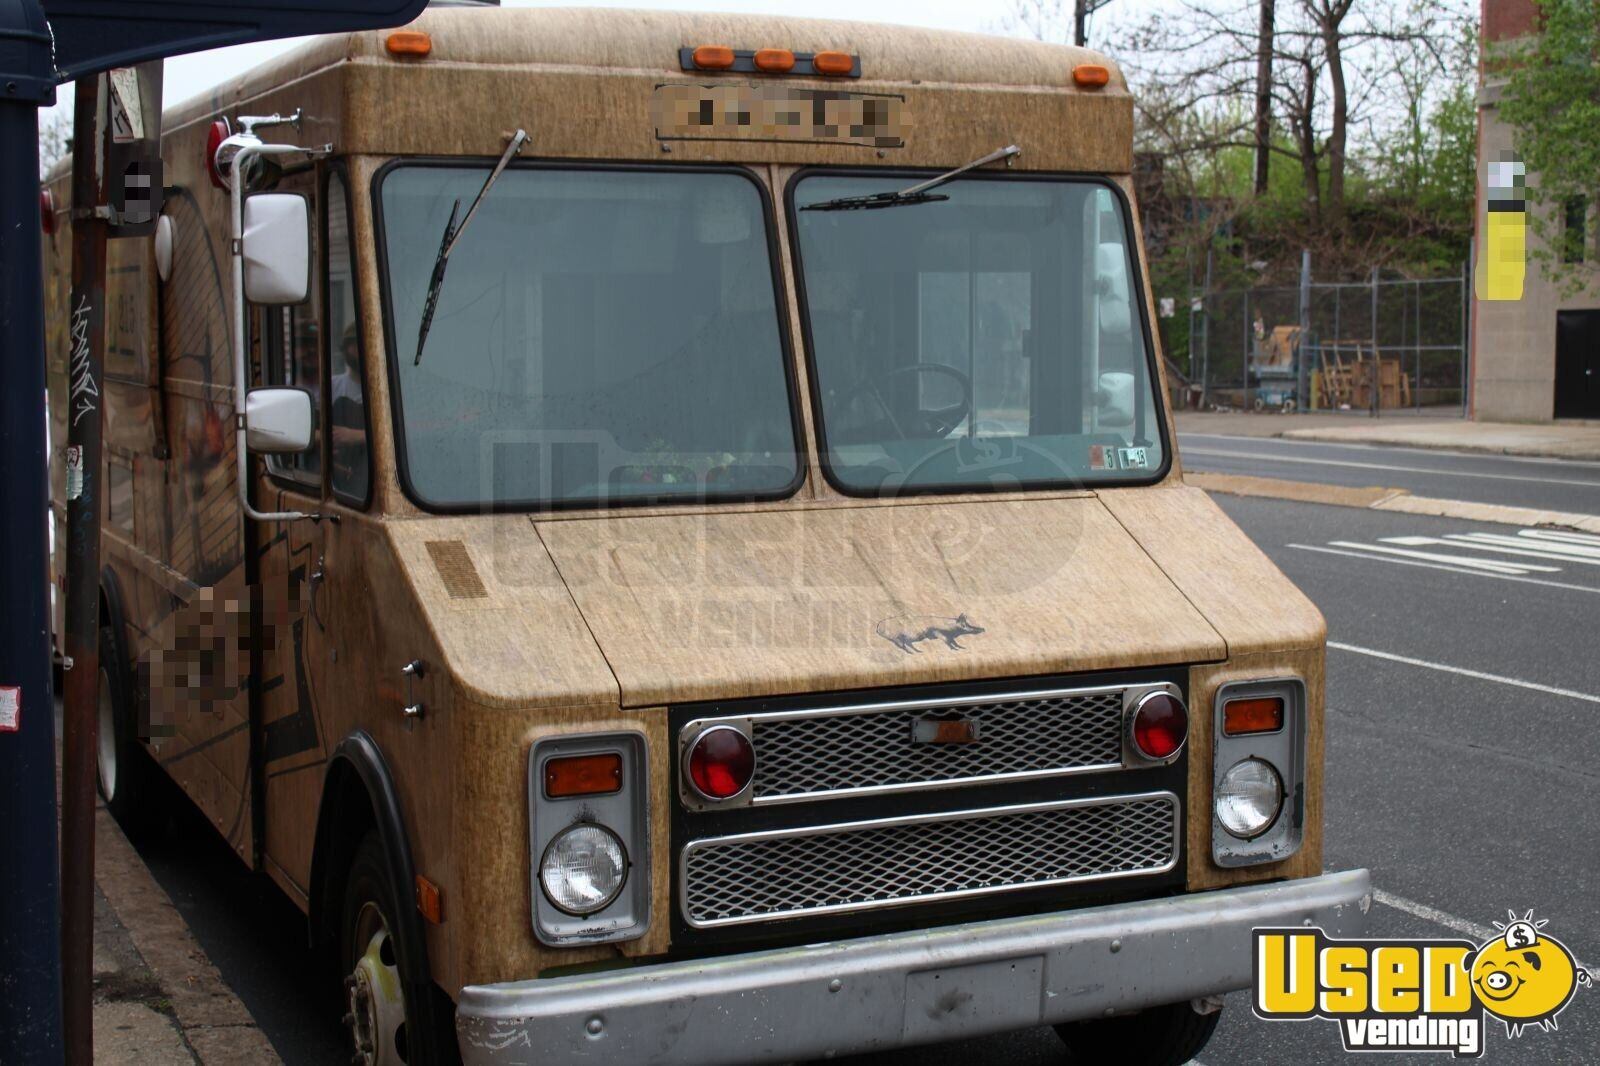 1985 P30 Step Van All-purpose Food Truck Concession Window Pennsylvania Gas Engine for Sale - 2